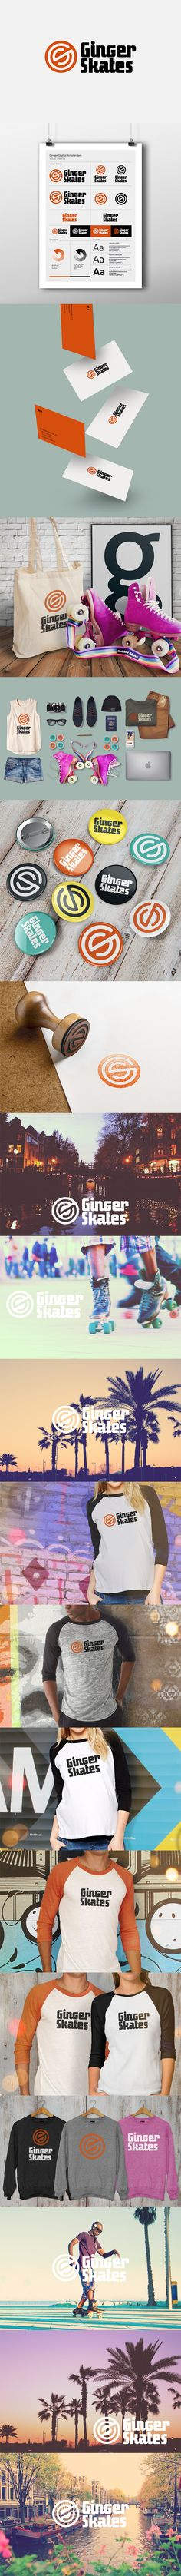 Zumiez roller skates - New Logotype And Visual Identity Designed For Ginger Skates The One And Only Shop In